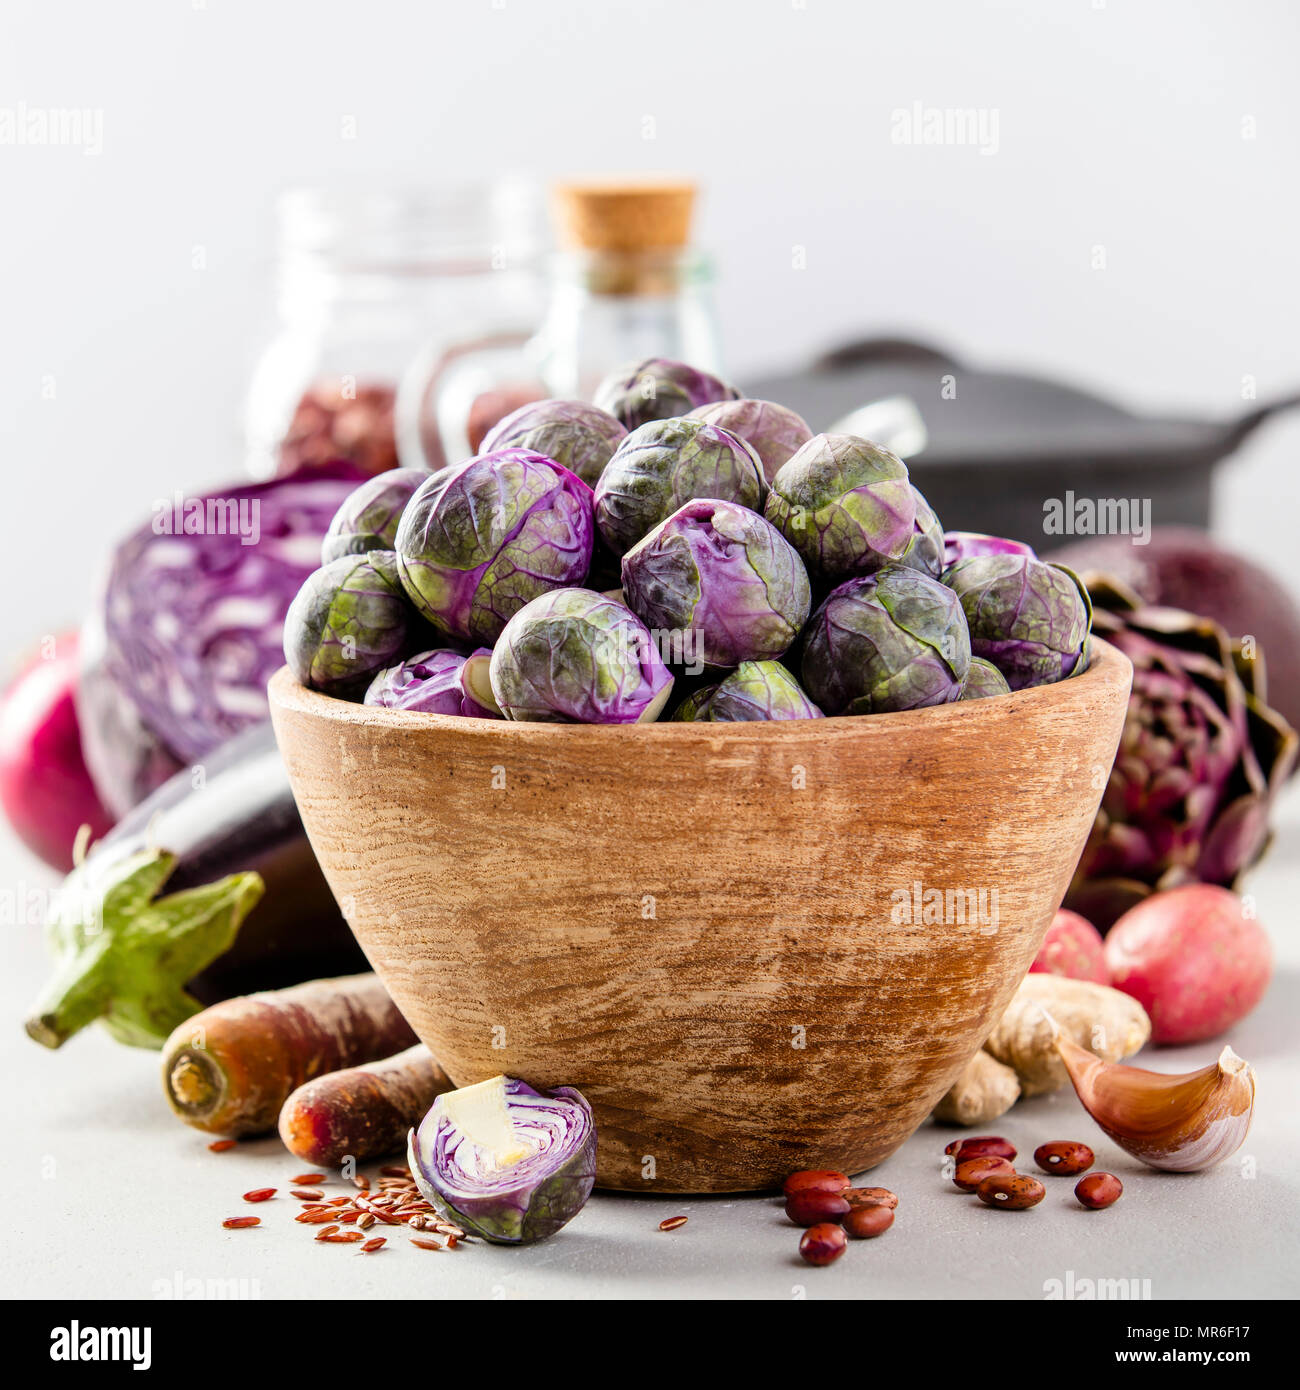 Purple Brussels sprouts in a bowl and healthy ingredients on concrete background. Vegan, gluten free, allergy-friendly, clean eating or raw diet. Spac - Stock Image